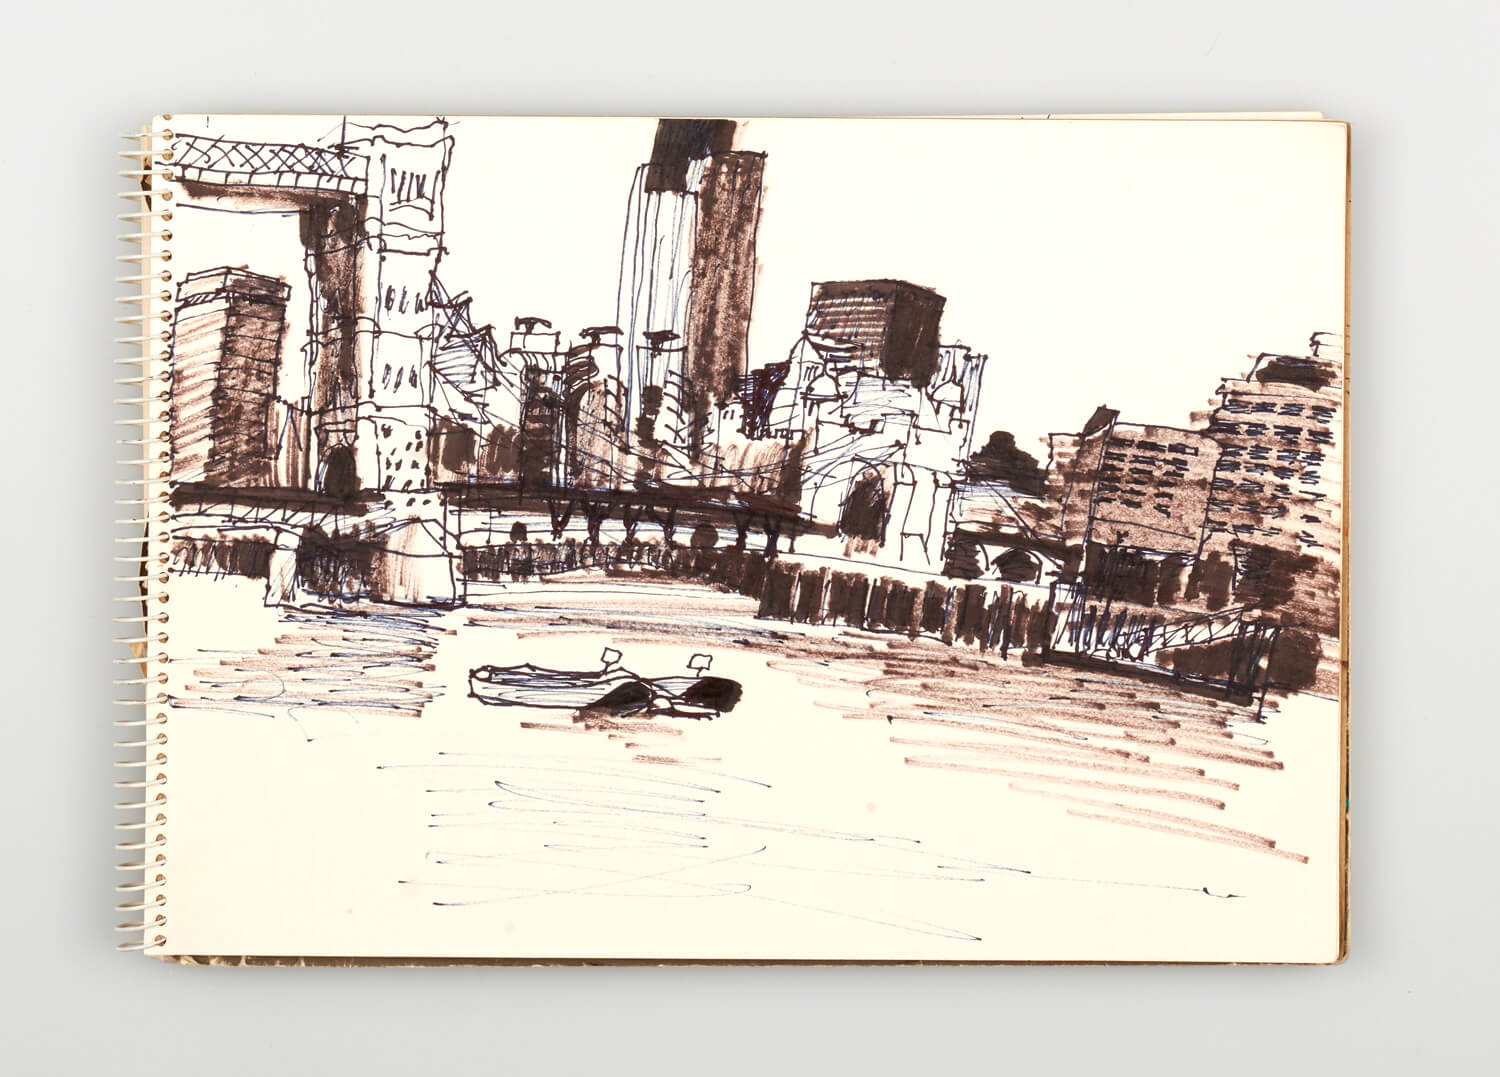 JB226 - Sketch for Bridges on the River Thames - 1992 - 21 x 30 cm - Pen and Ink on cartridge paper